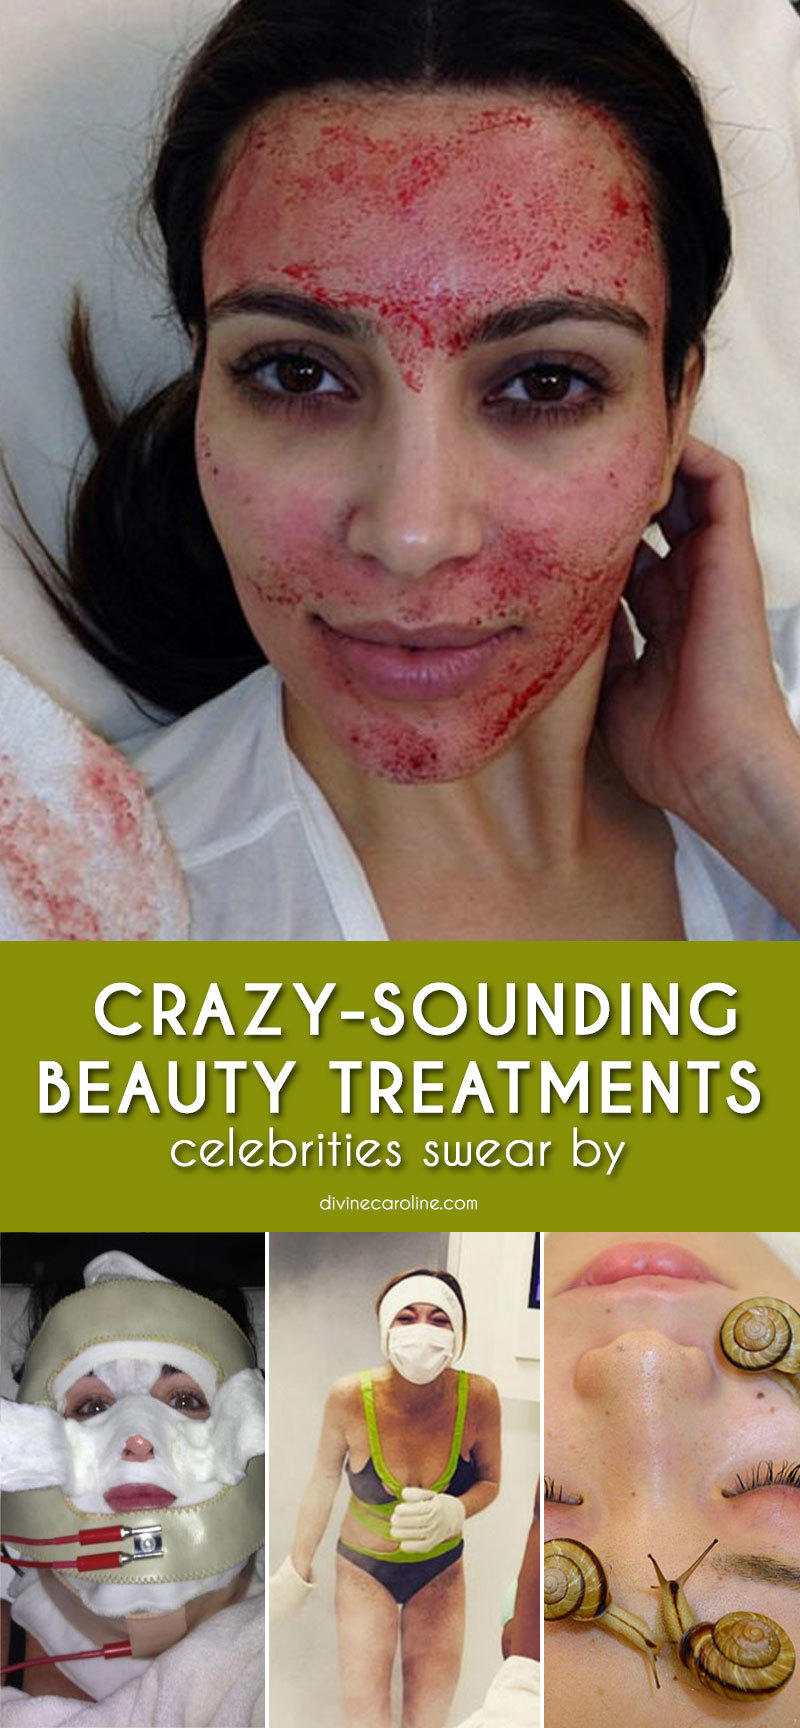 What You'll Have to Pay for Crazy Celebrity Beauty Treatments